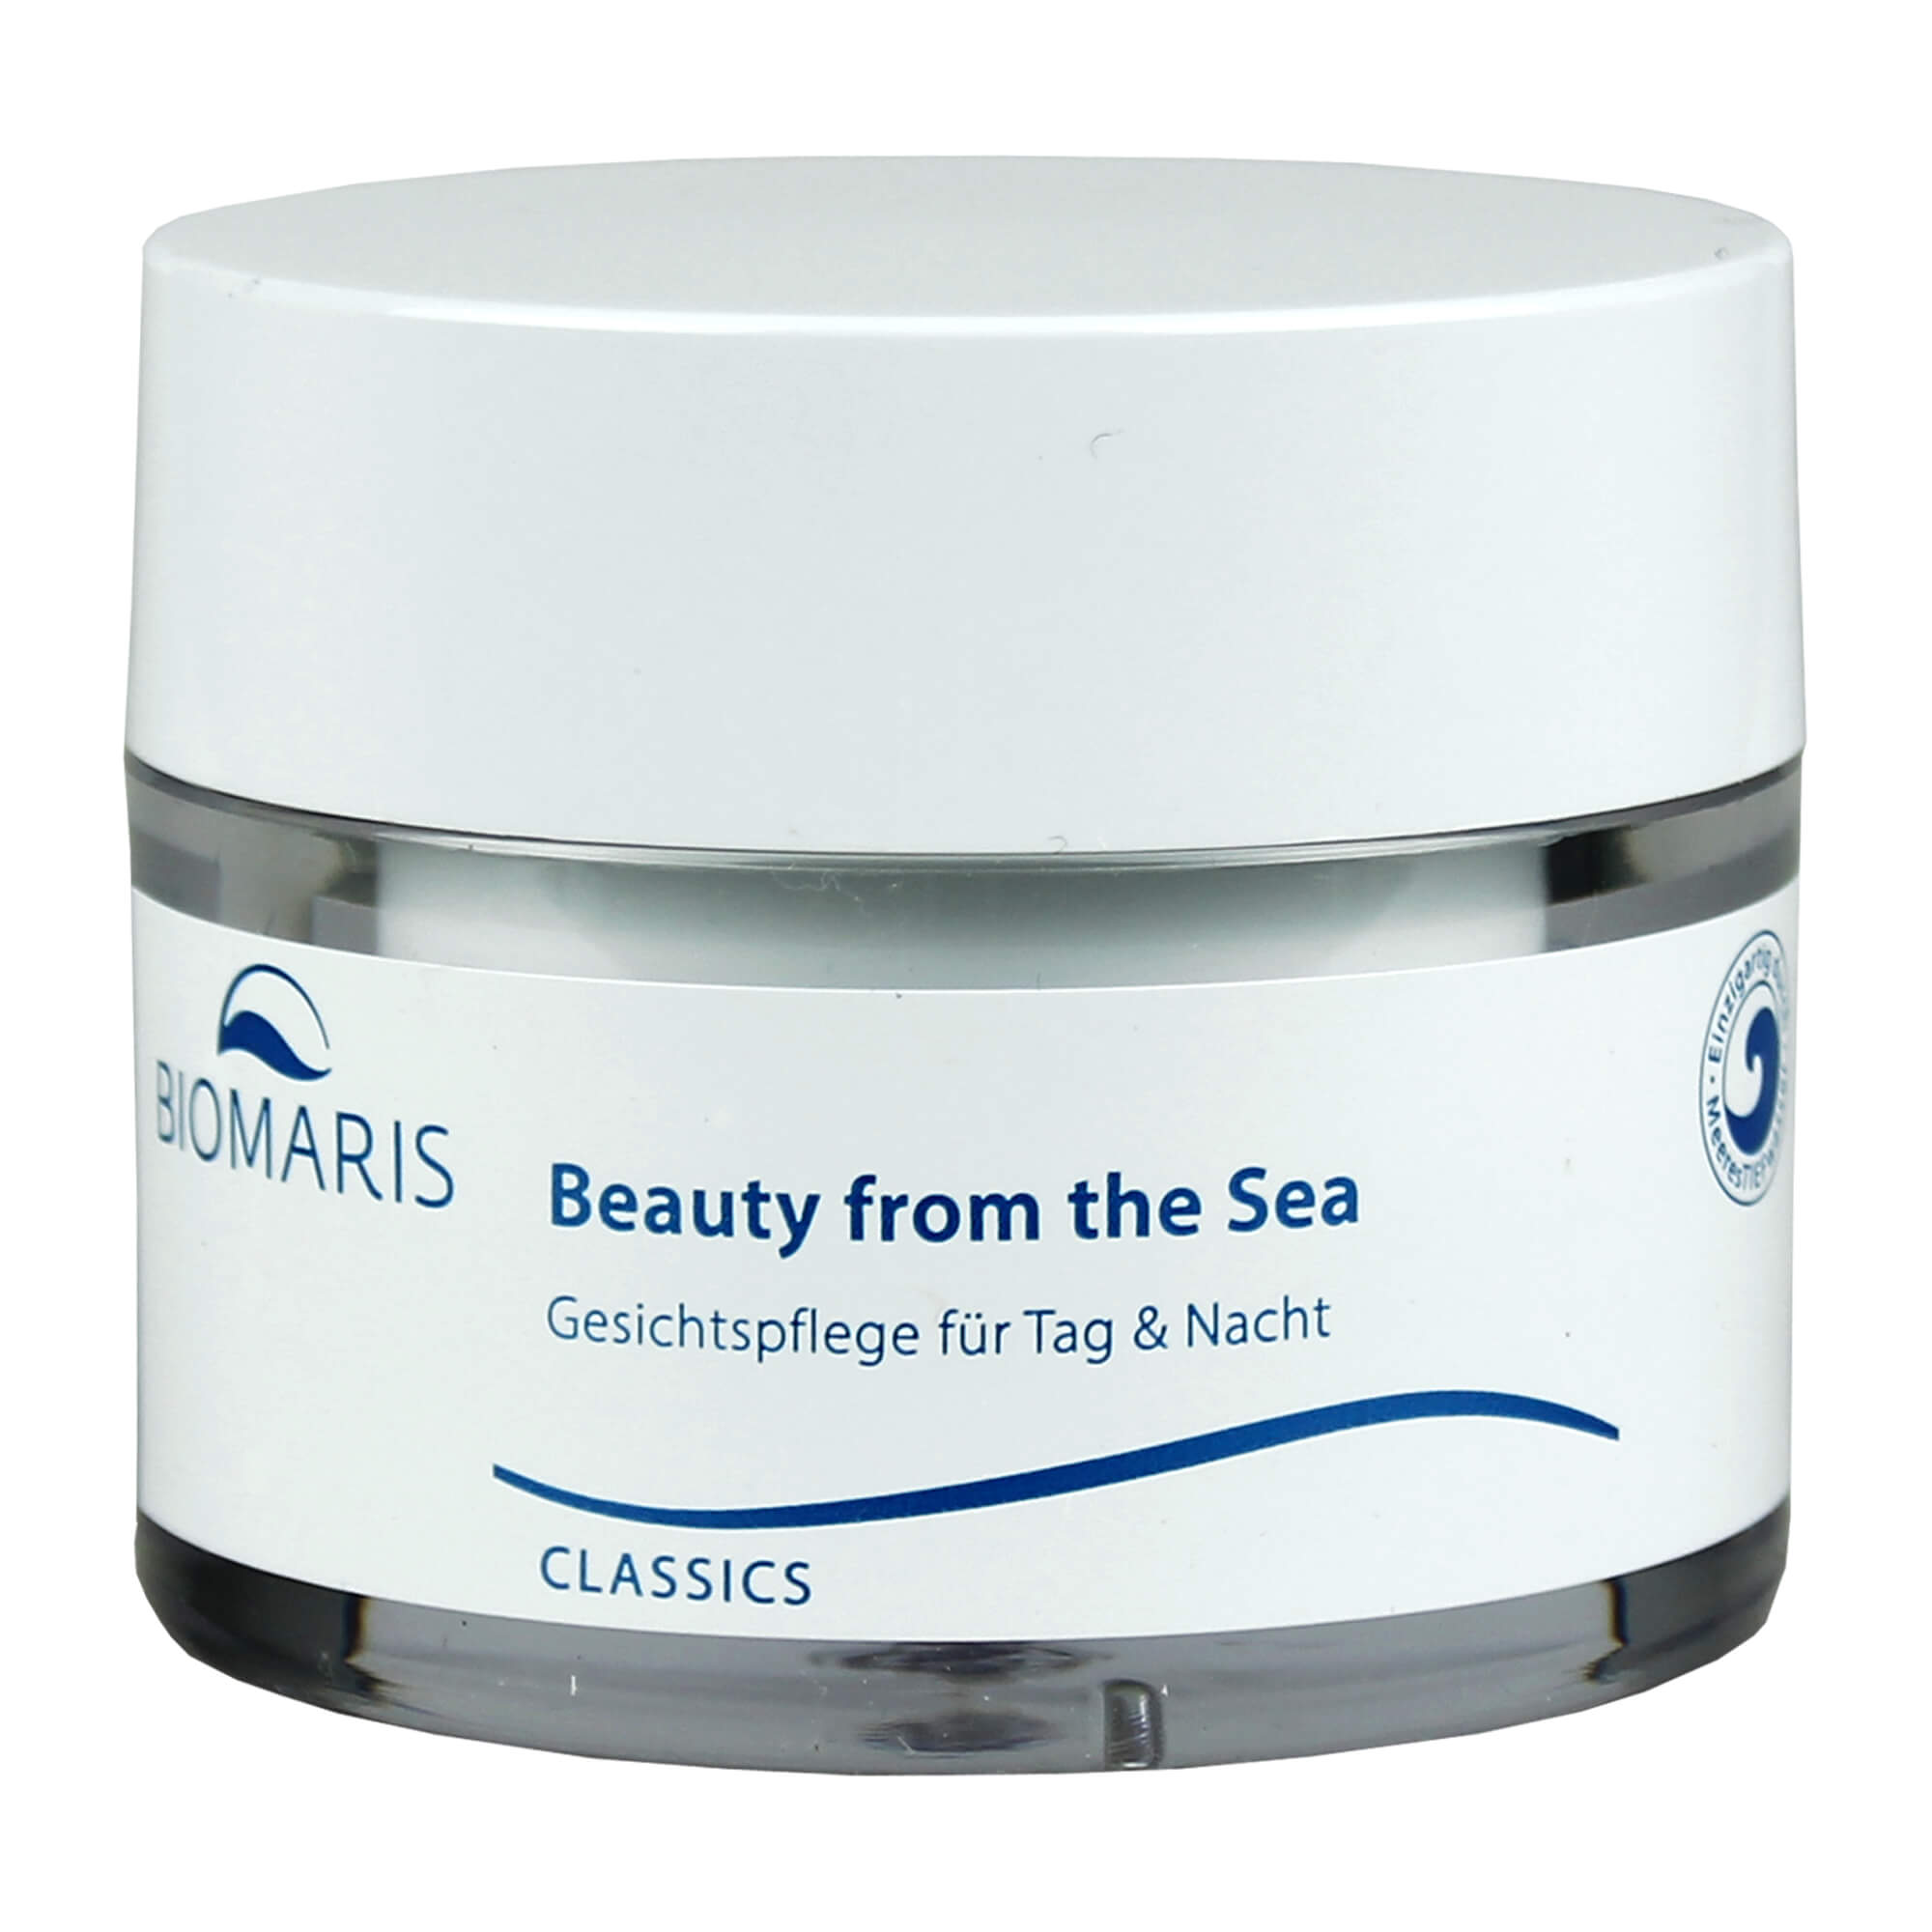 BIOMARIS Beauty from the Sea Creme Tag & Nacht